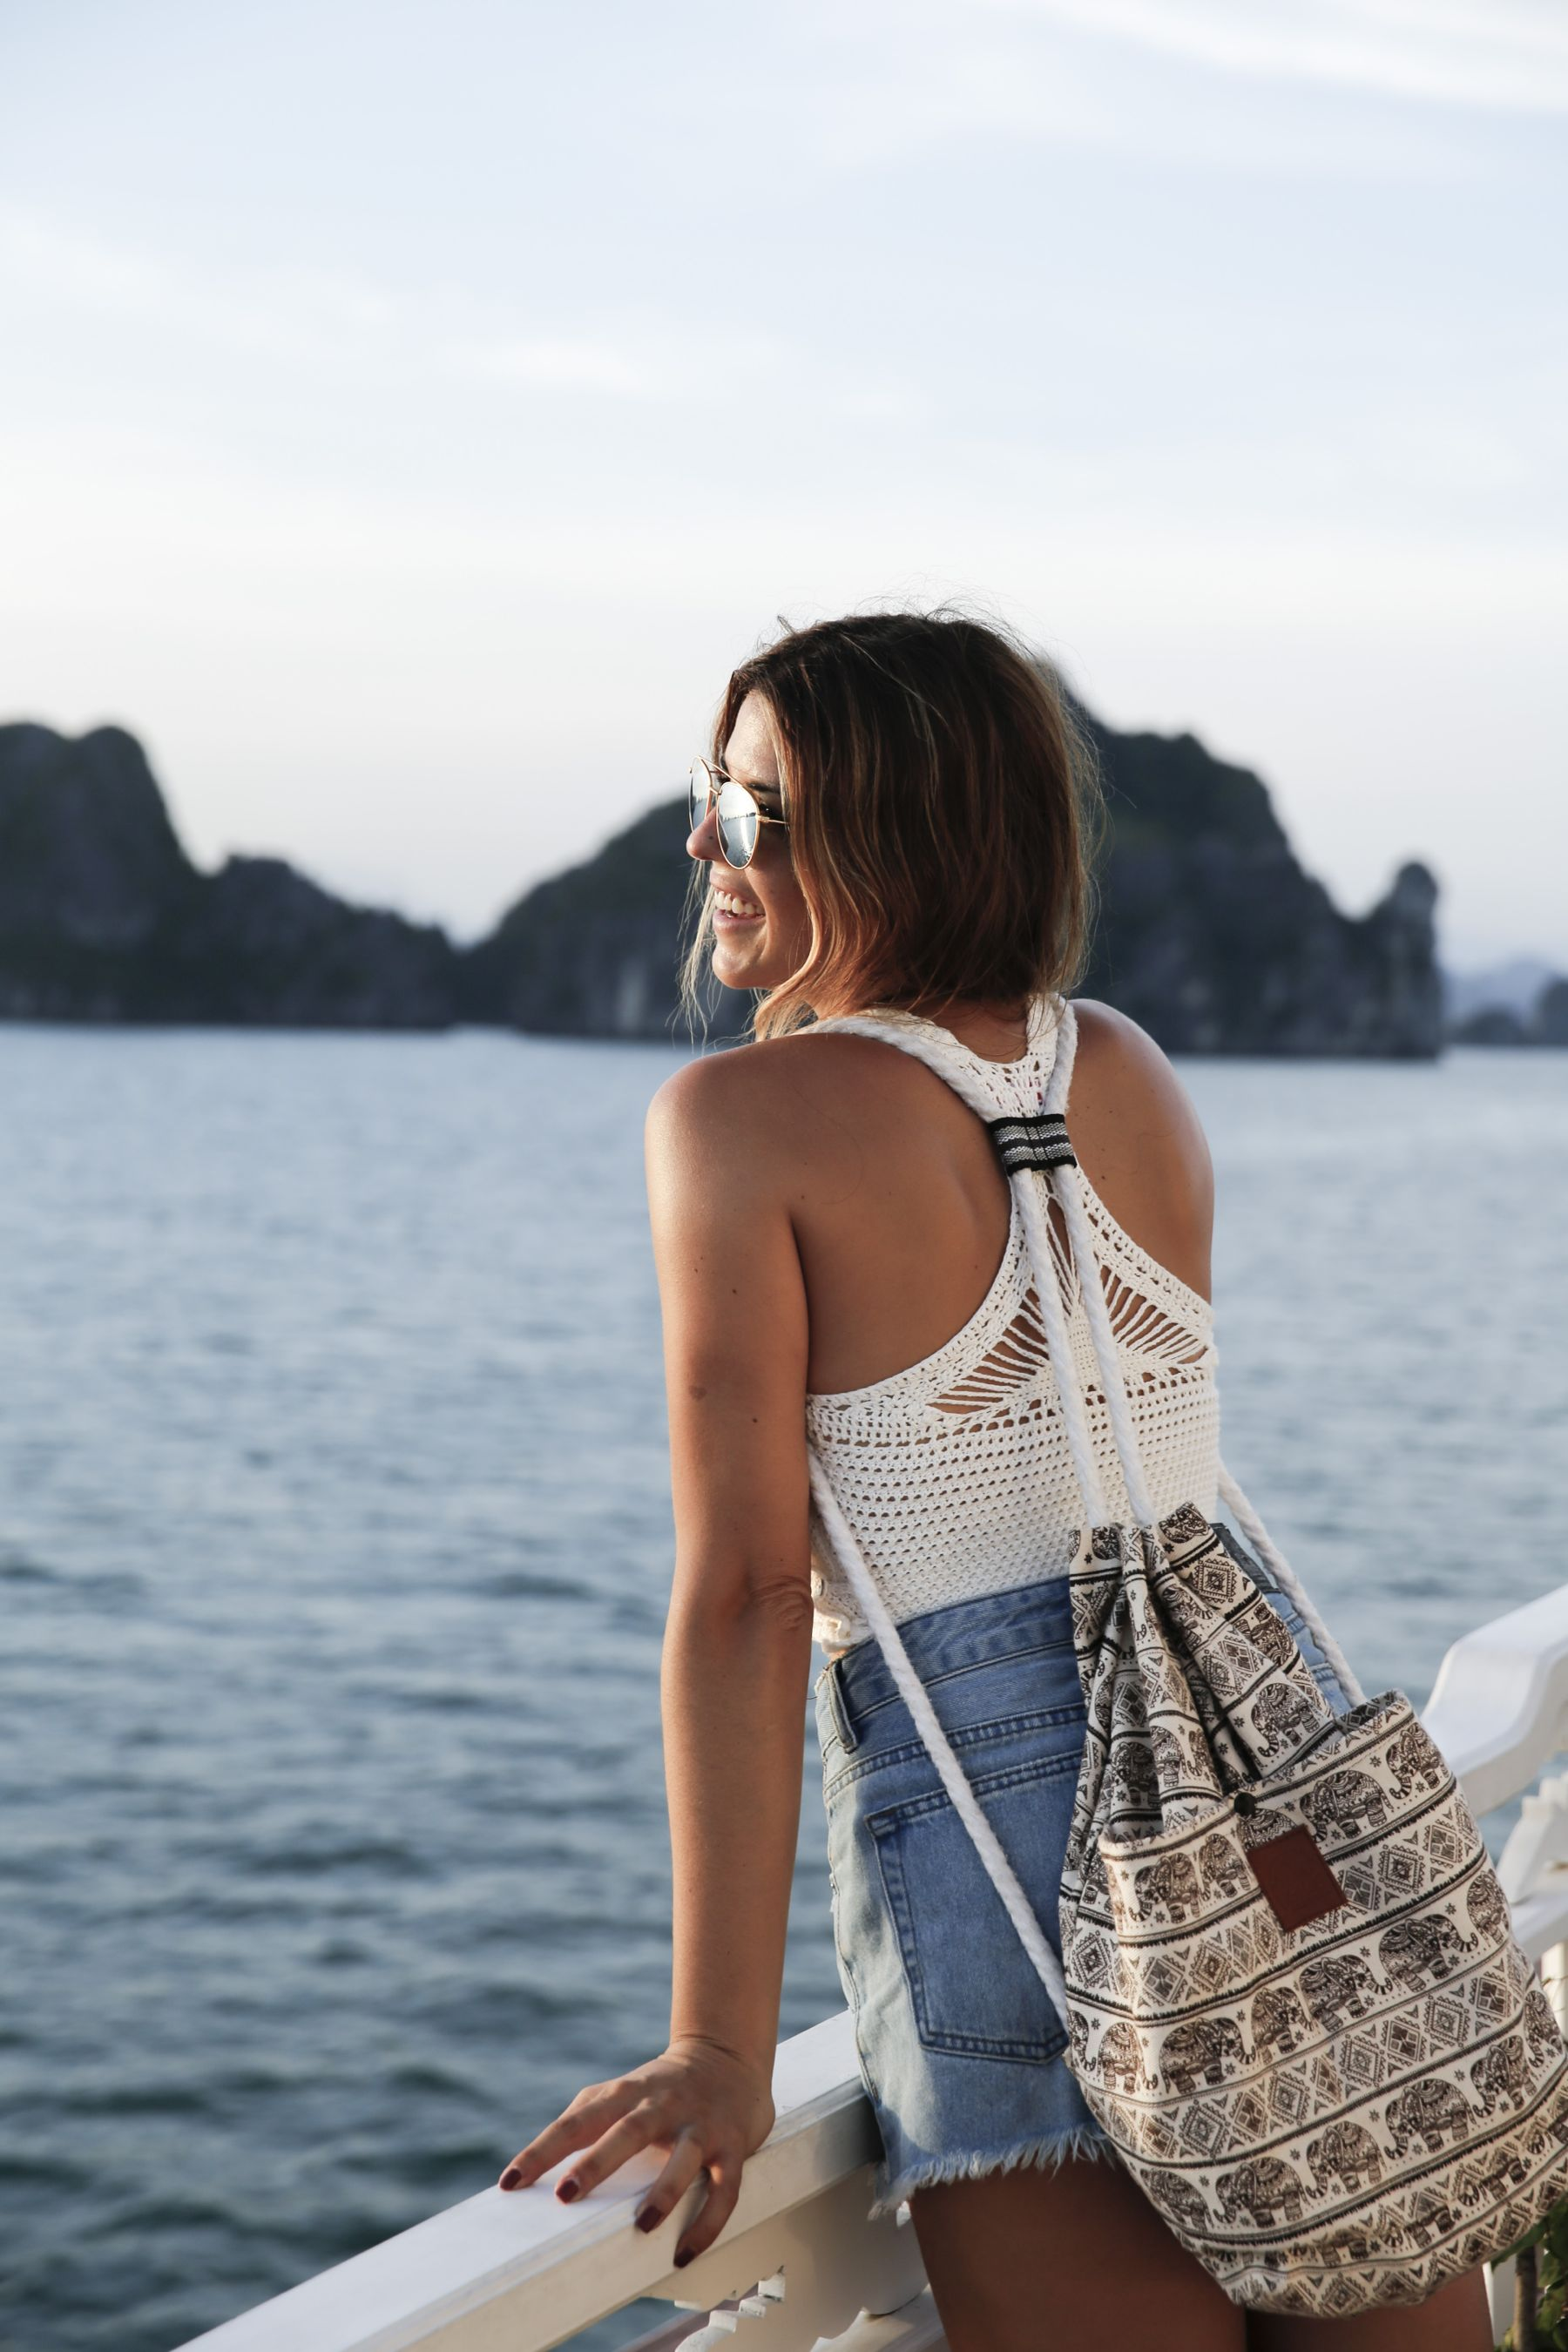 halong bay bahia vietnam excursiones barco trendy taste summer outfit look havaianas shorts denim top crochet pull and bear sunglasses_15